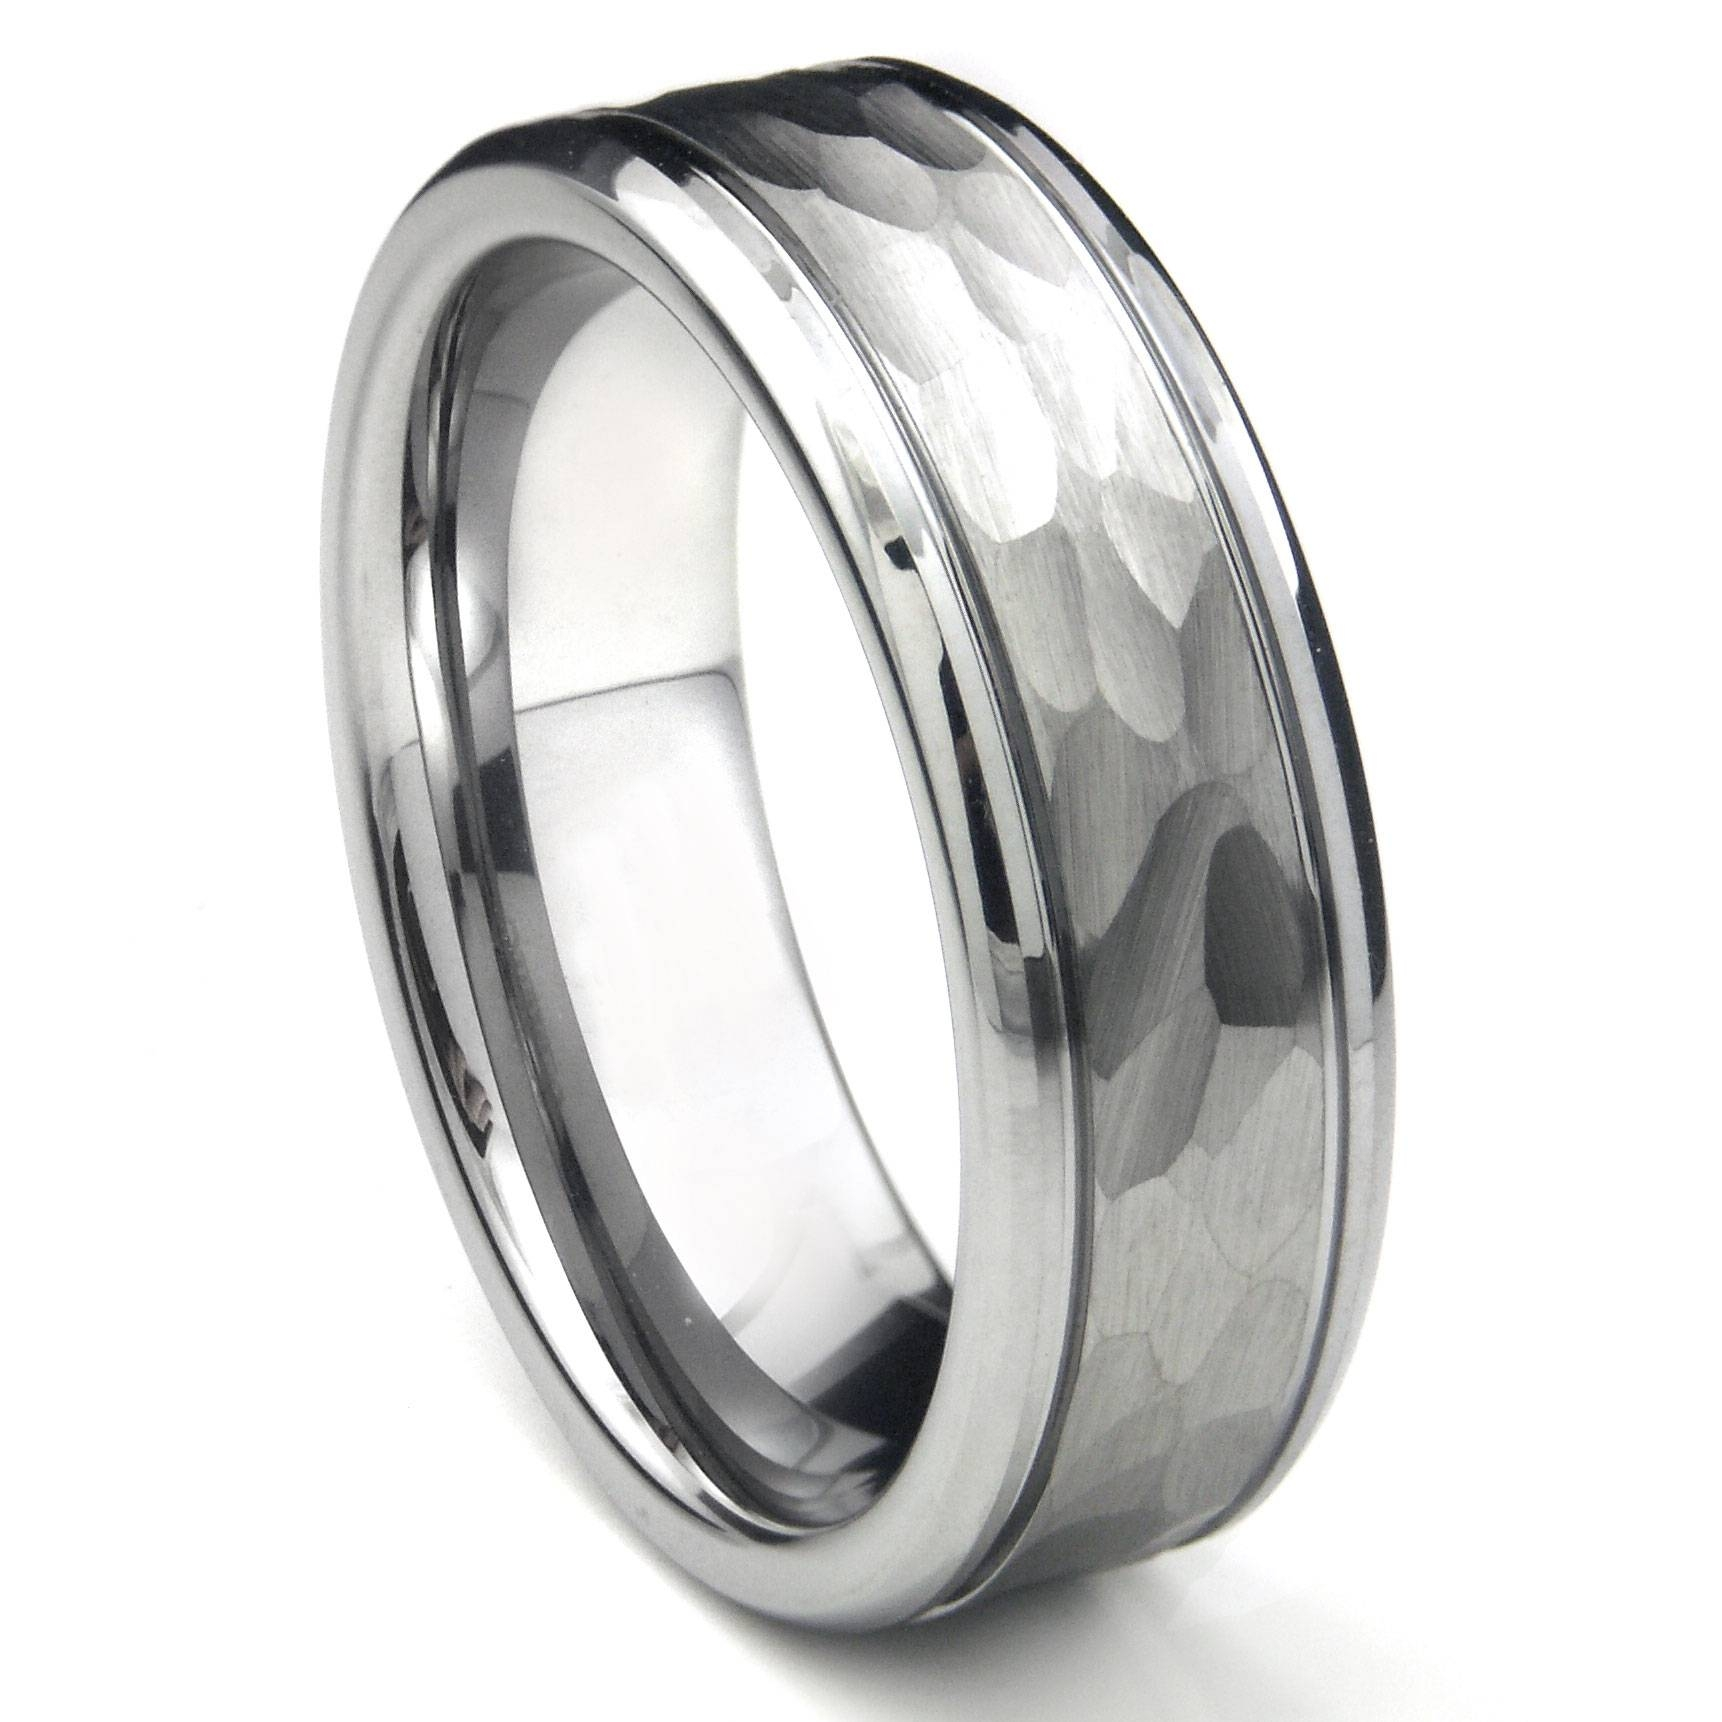 Tungsten Carbide Hammer Finish Wedding Band Ring /w Grooves Throughout Gunmetal Wedding Bands (View 8 of 15)